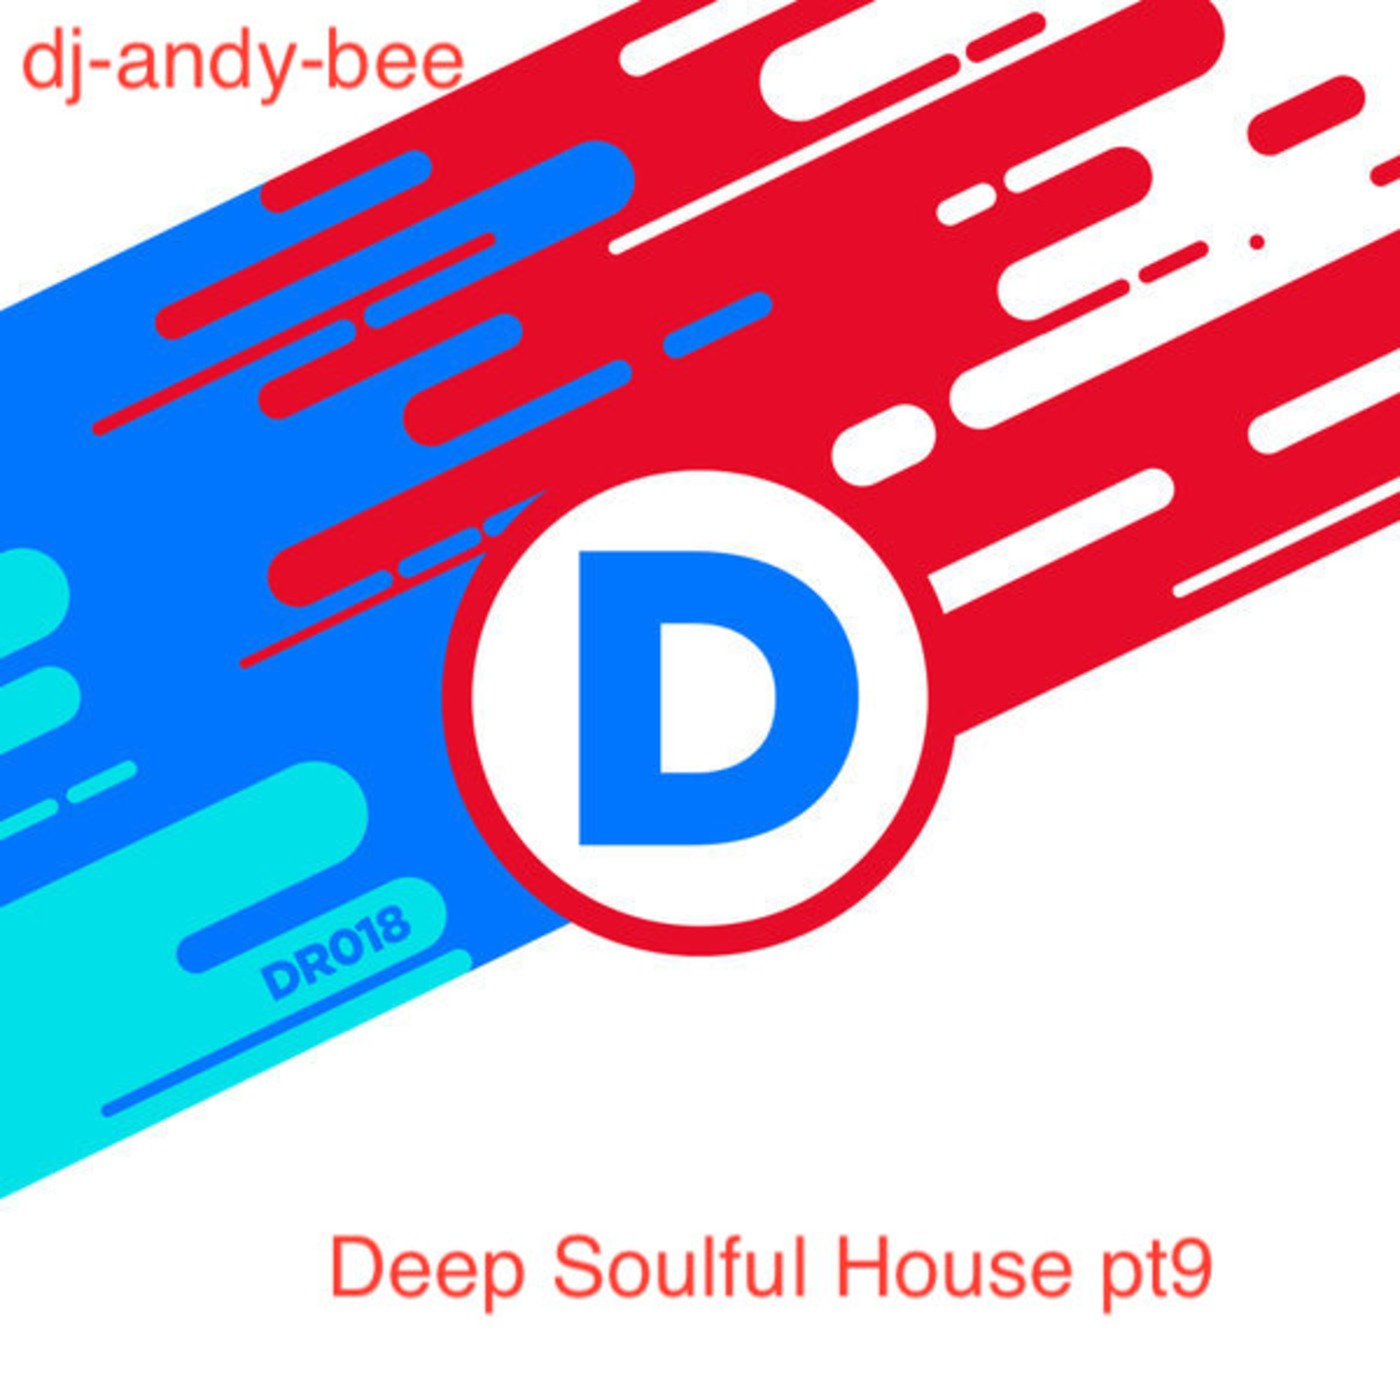 dj-andy-bee Deep n Soulful House # Urban Soul Podcast | Podbay